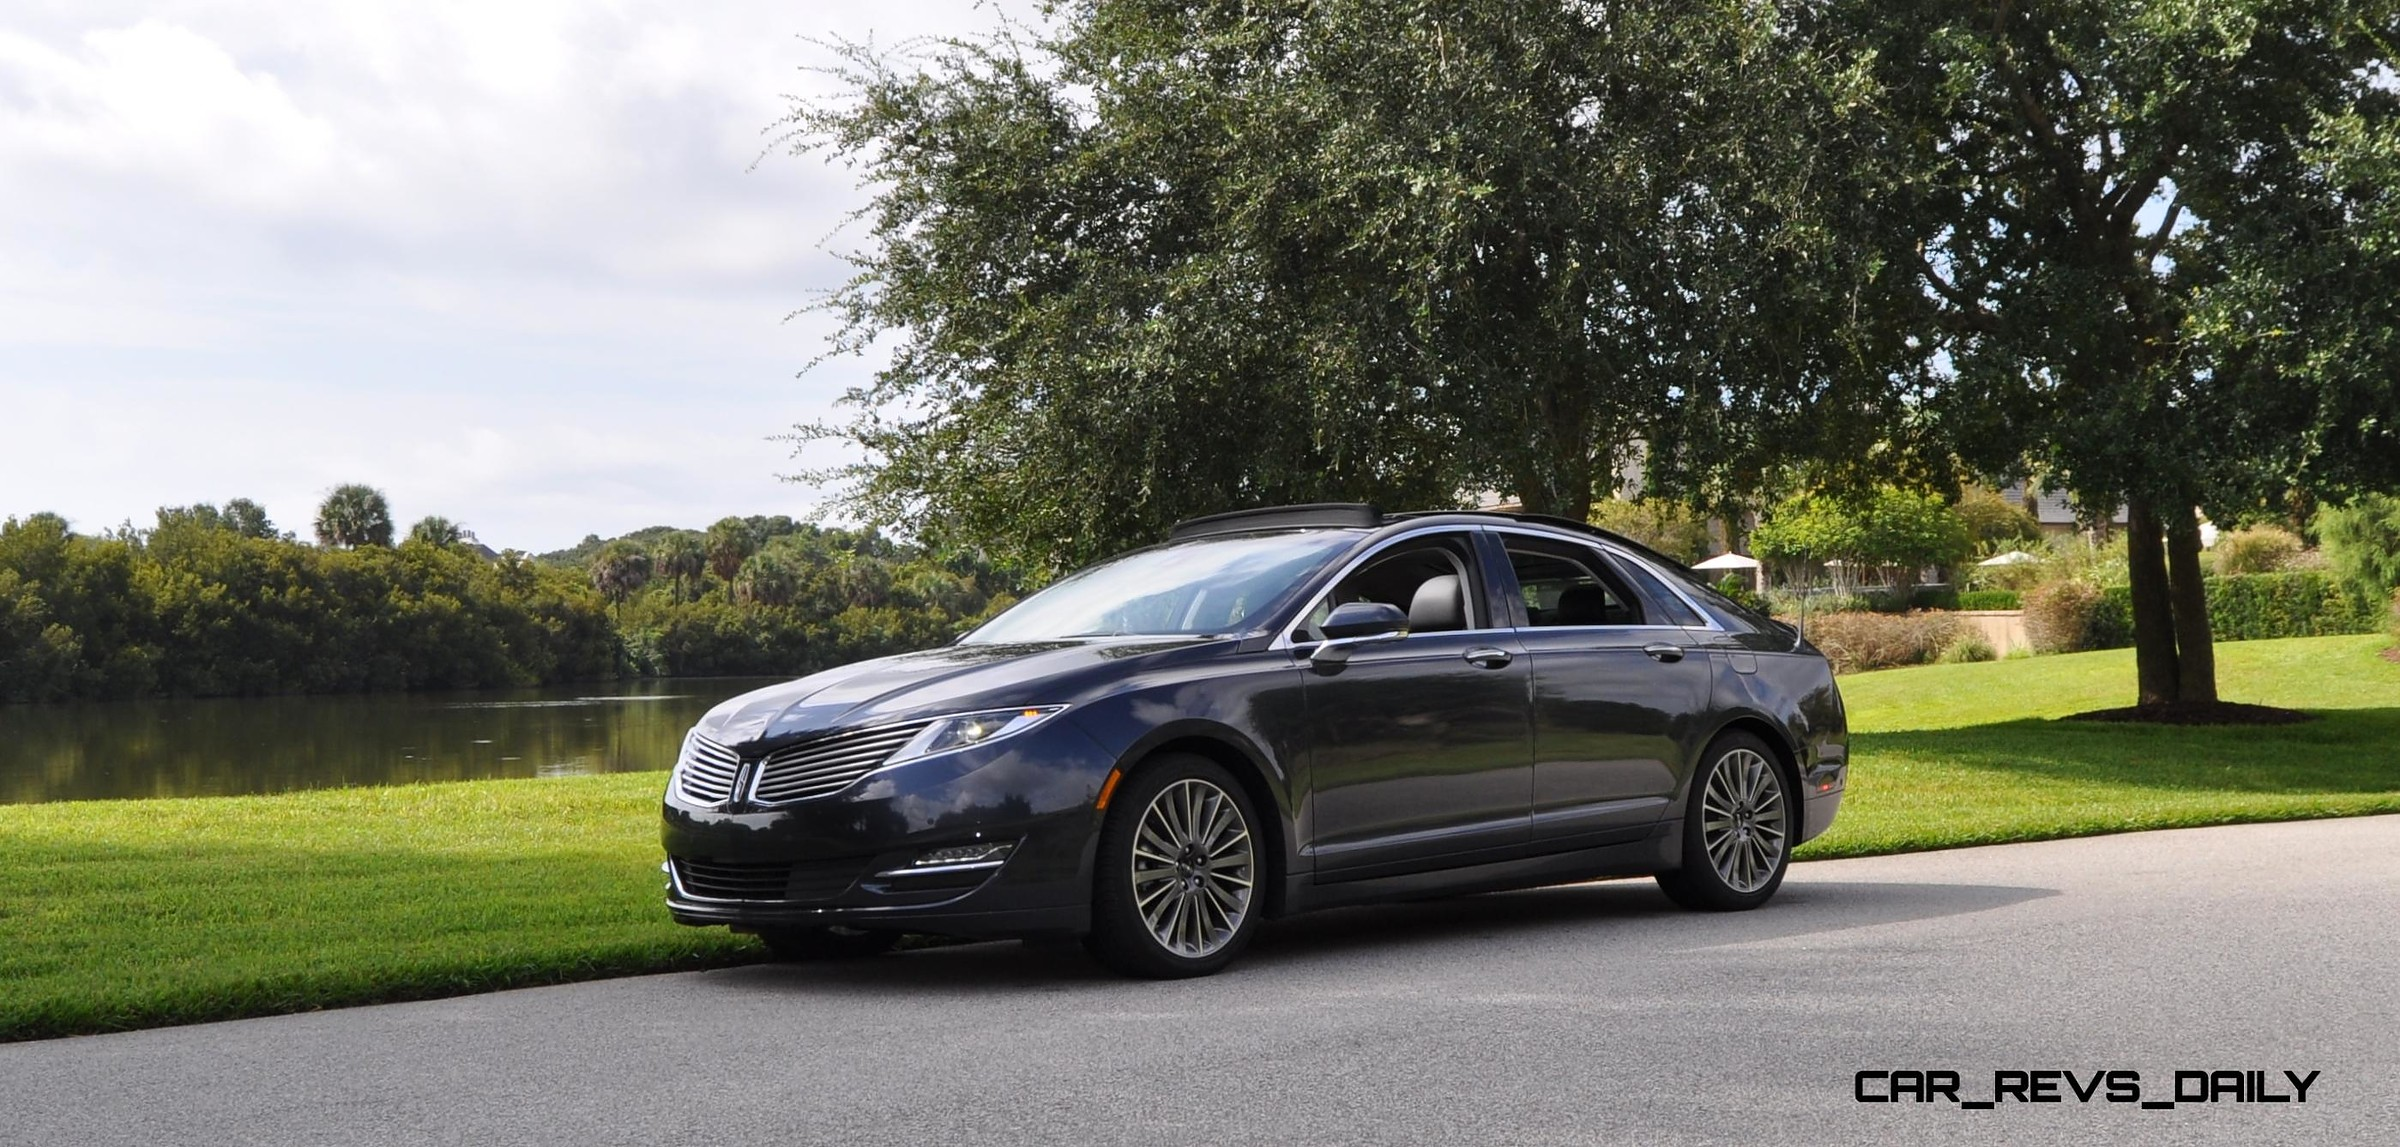 2012 Lincoln Mkz Hybrid Review >> How To Put A Rear View Mirror On A Mdx | Autos Post